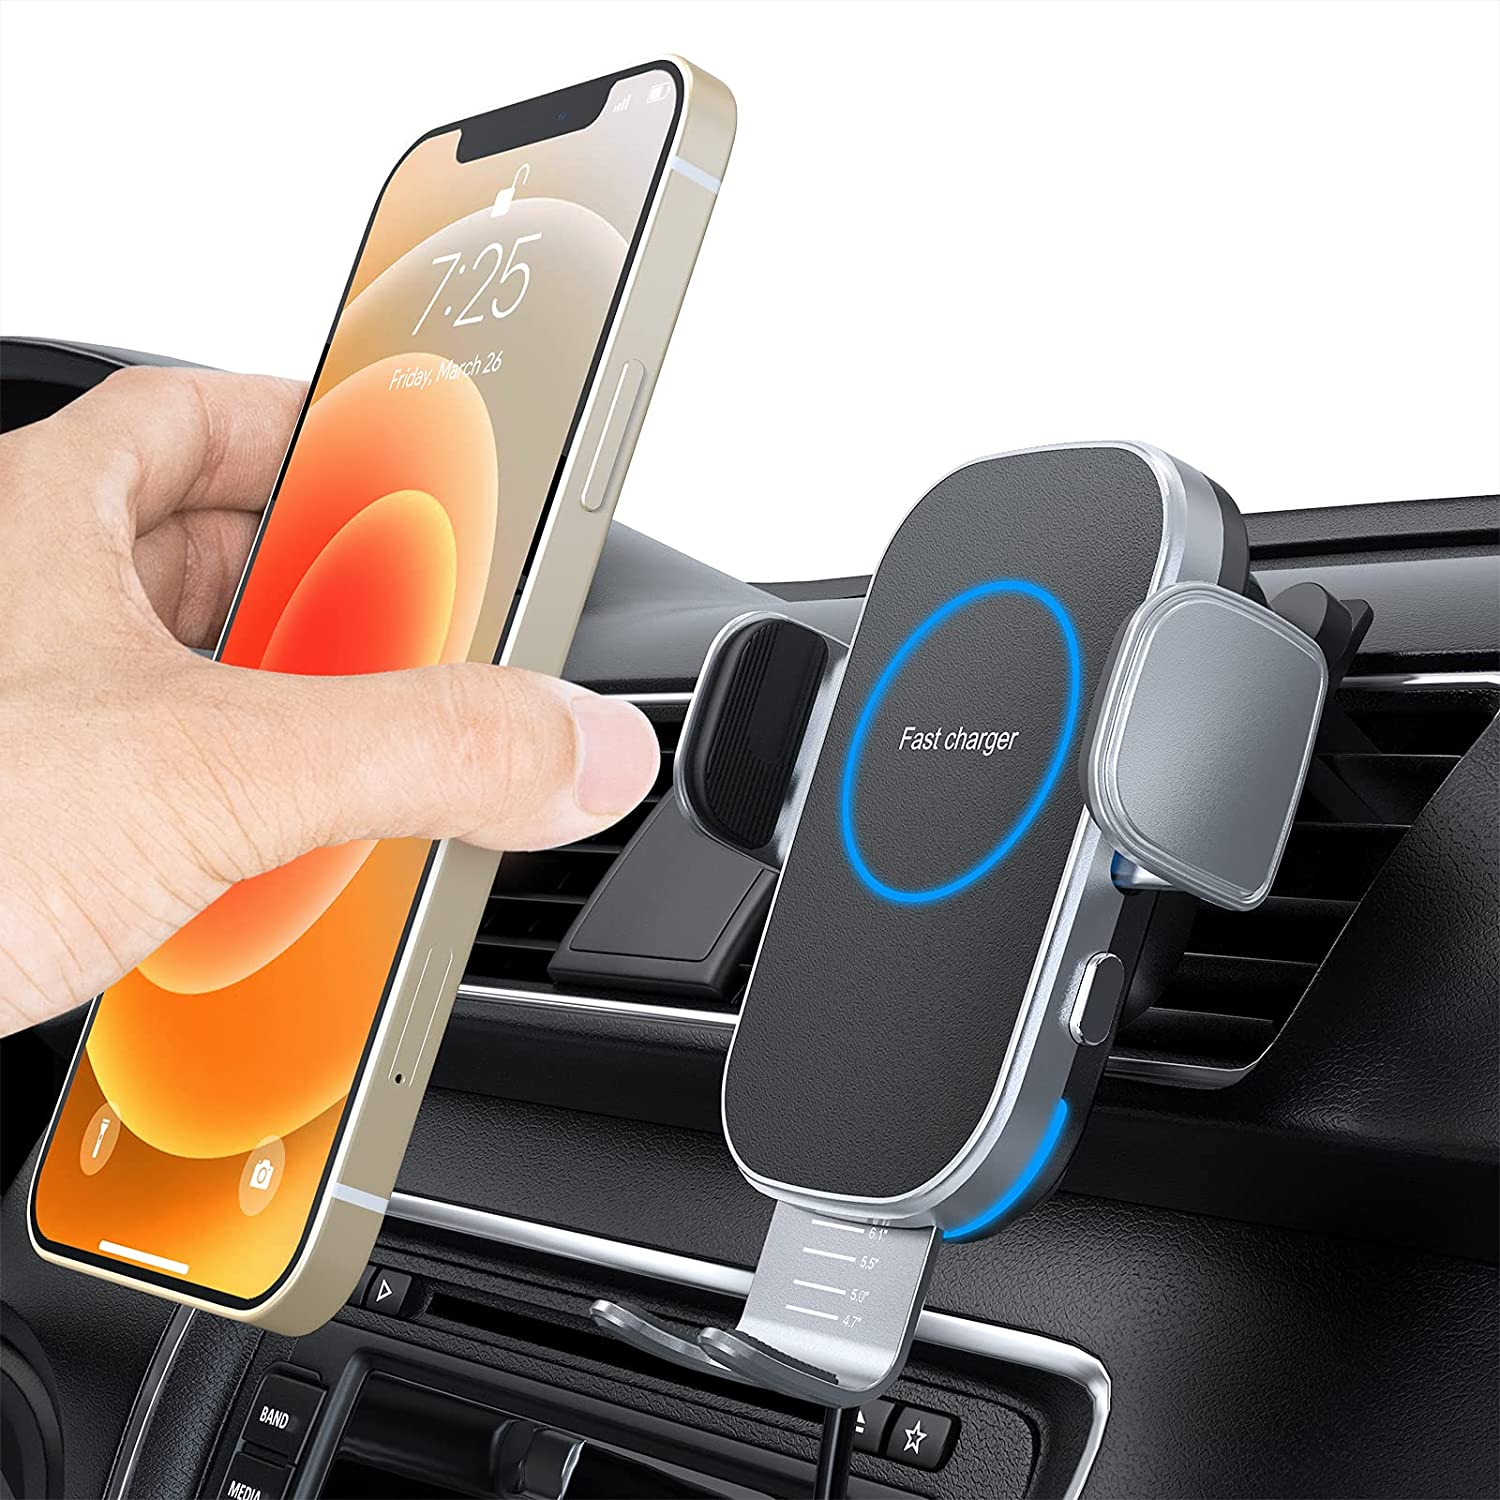 Car Wireless Charger, 15W Auto-Clamping Car Charger Mount, Air Vent Car Charging Holder for iPhone 12/12 Pro/ 11/11 Pro/Xr/Xs Max/Xs/X/8, Samsung S21/S20 /S10/S9/Note10/ Note9(with QC 3.0 Car Charger)